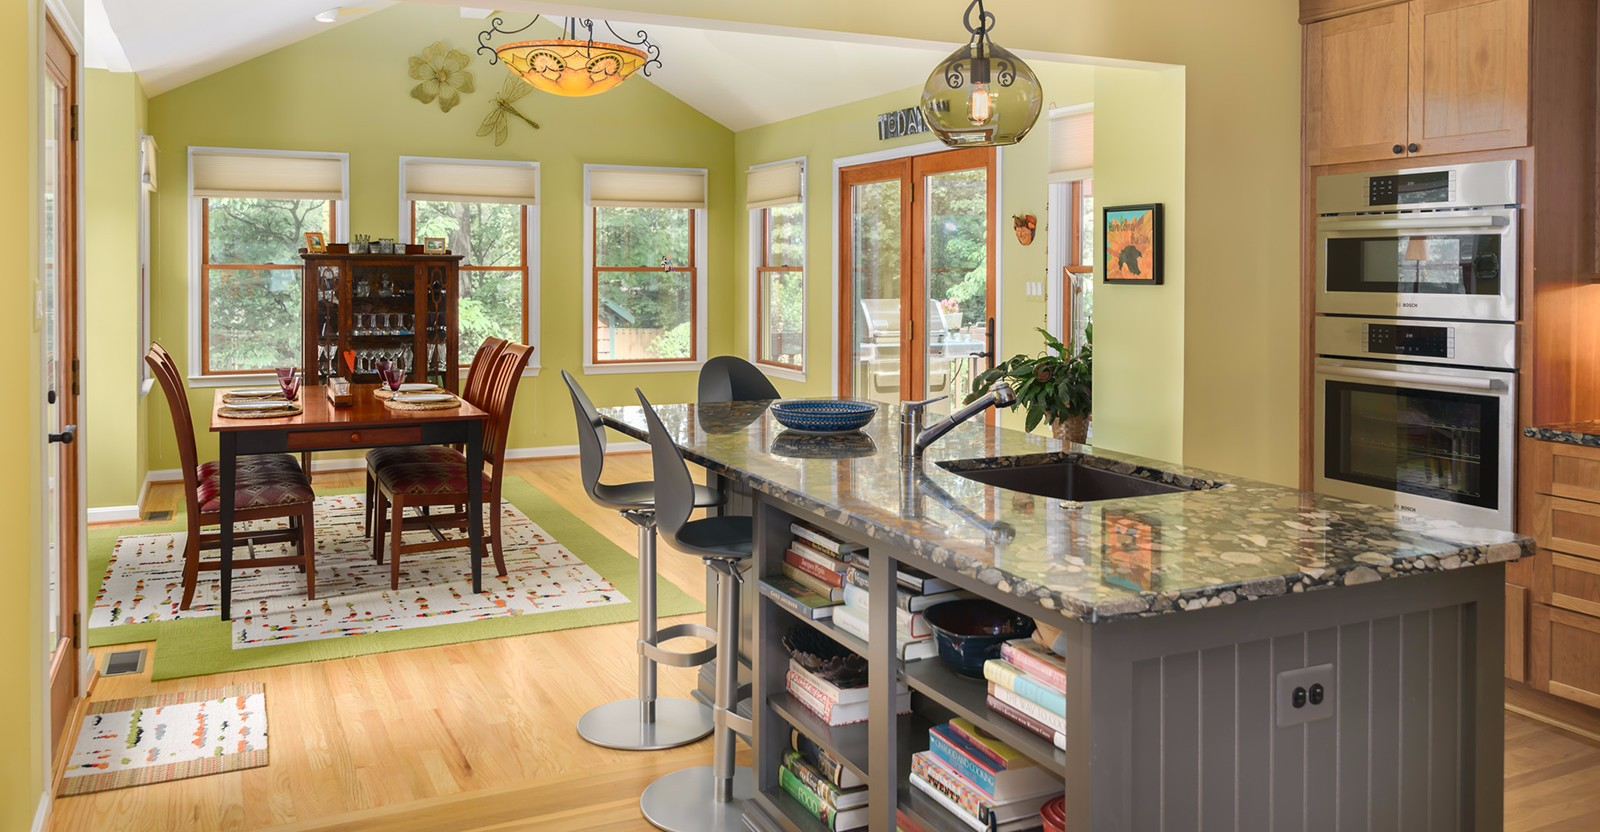 kitchen remodeling kitchen remodeling manassas va kitchen remodeling in fairfax